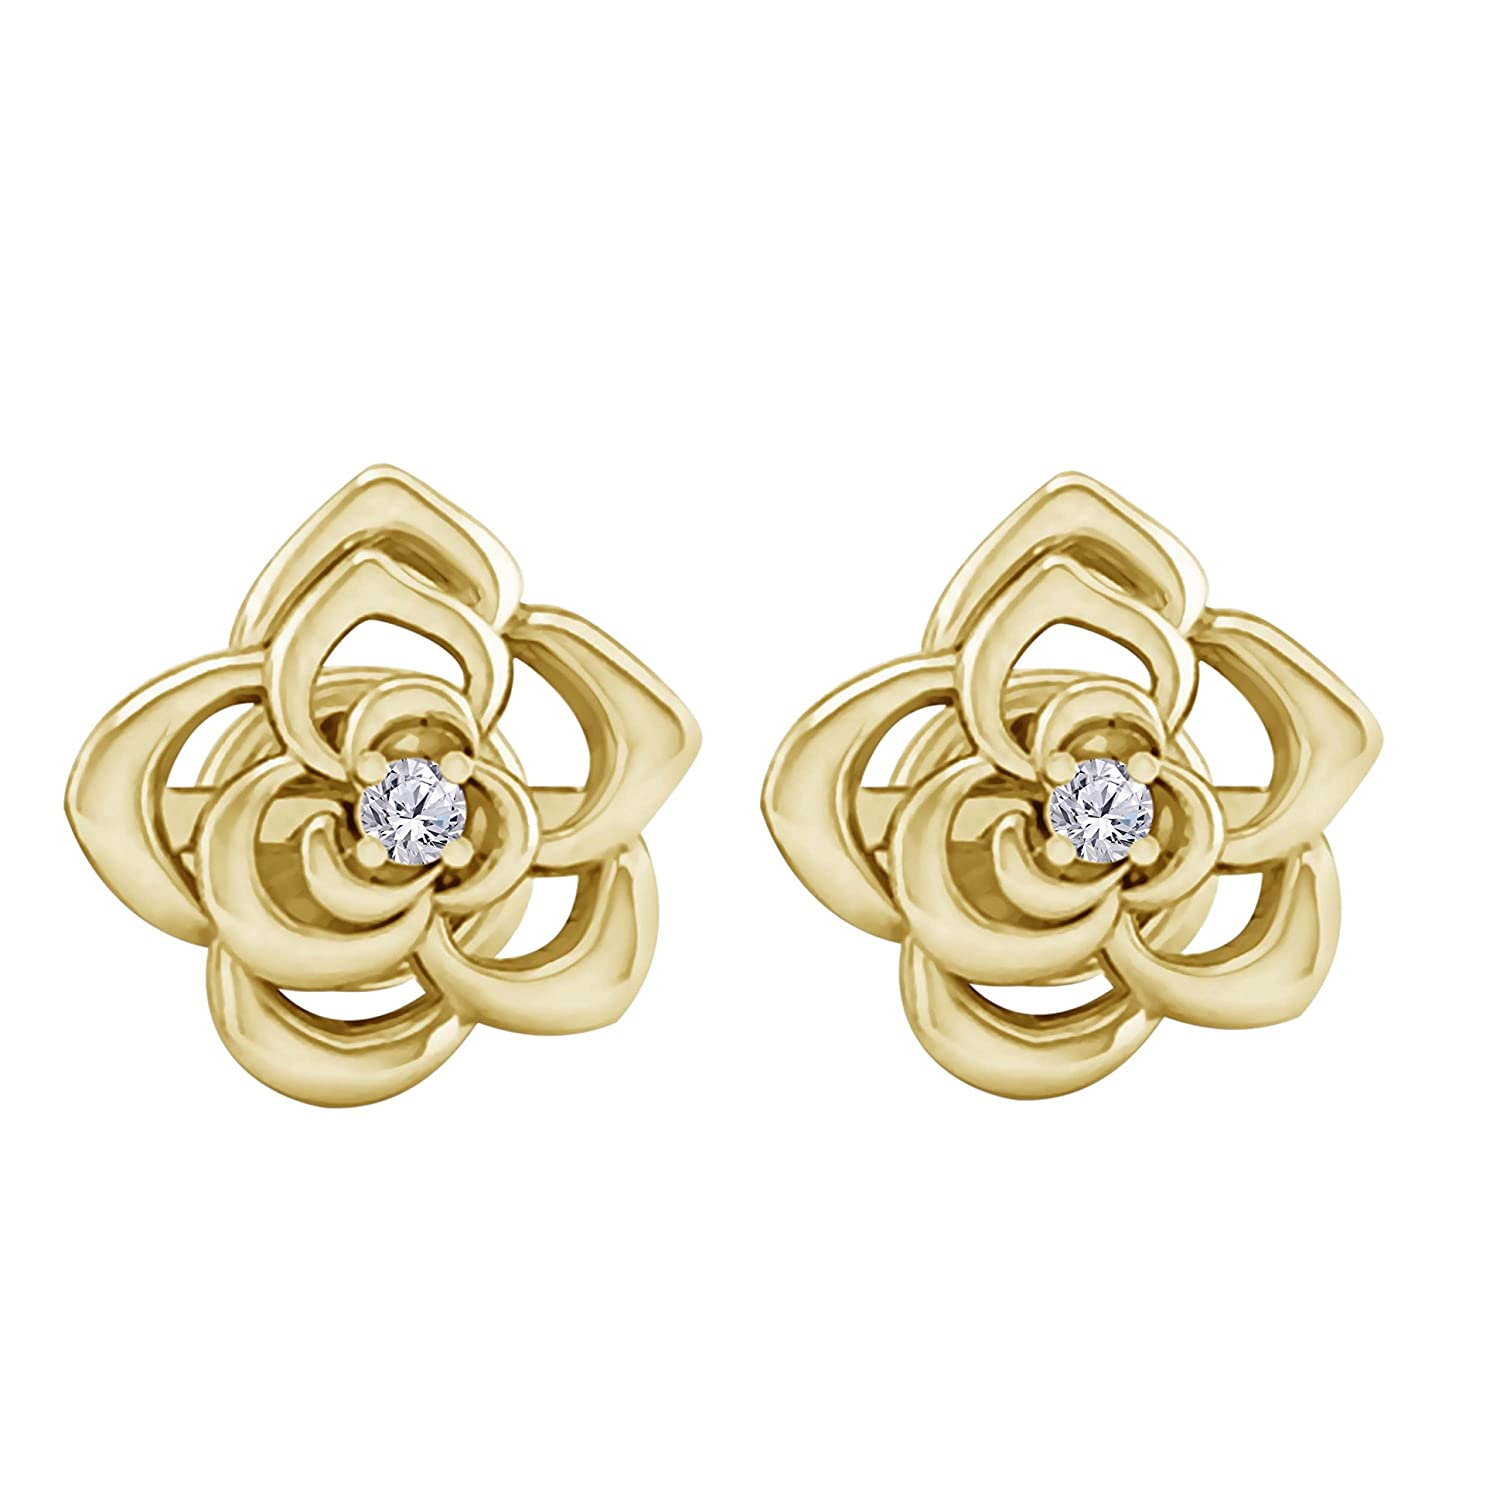 New Collection 14k Yellow Gold Over Alloy White CZ Diamond Belle Fashion Stud Earrings